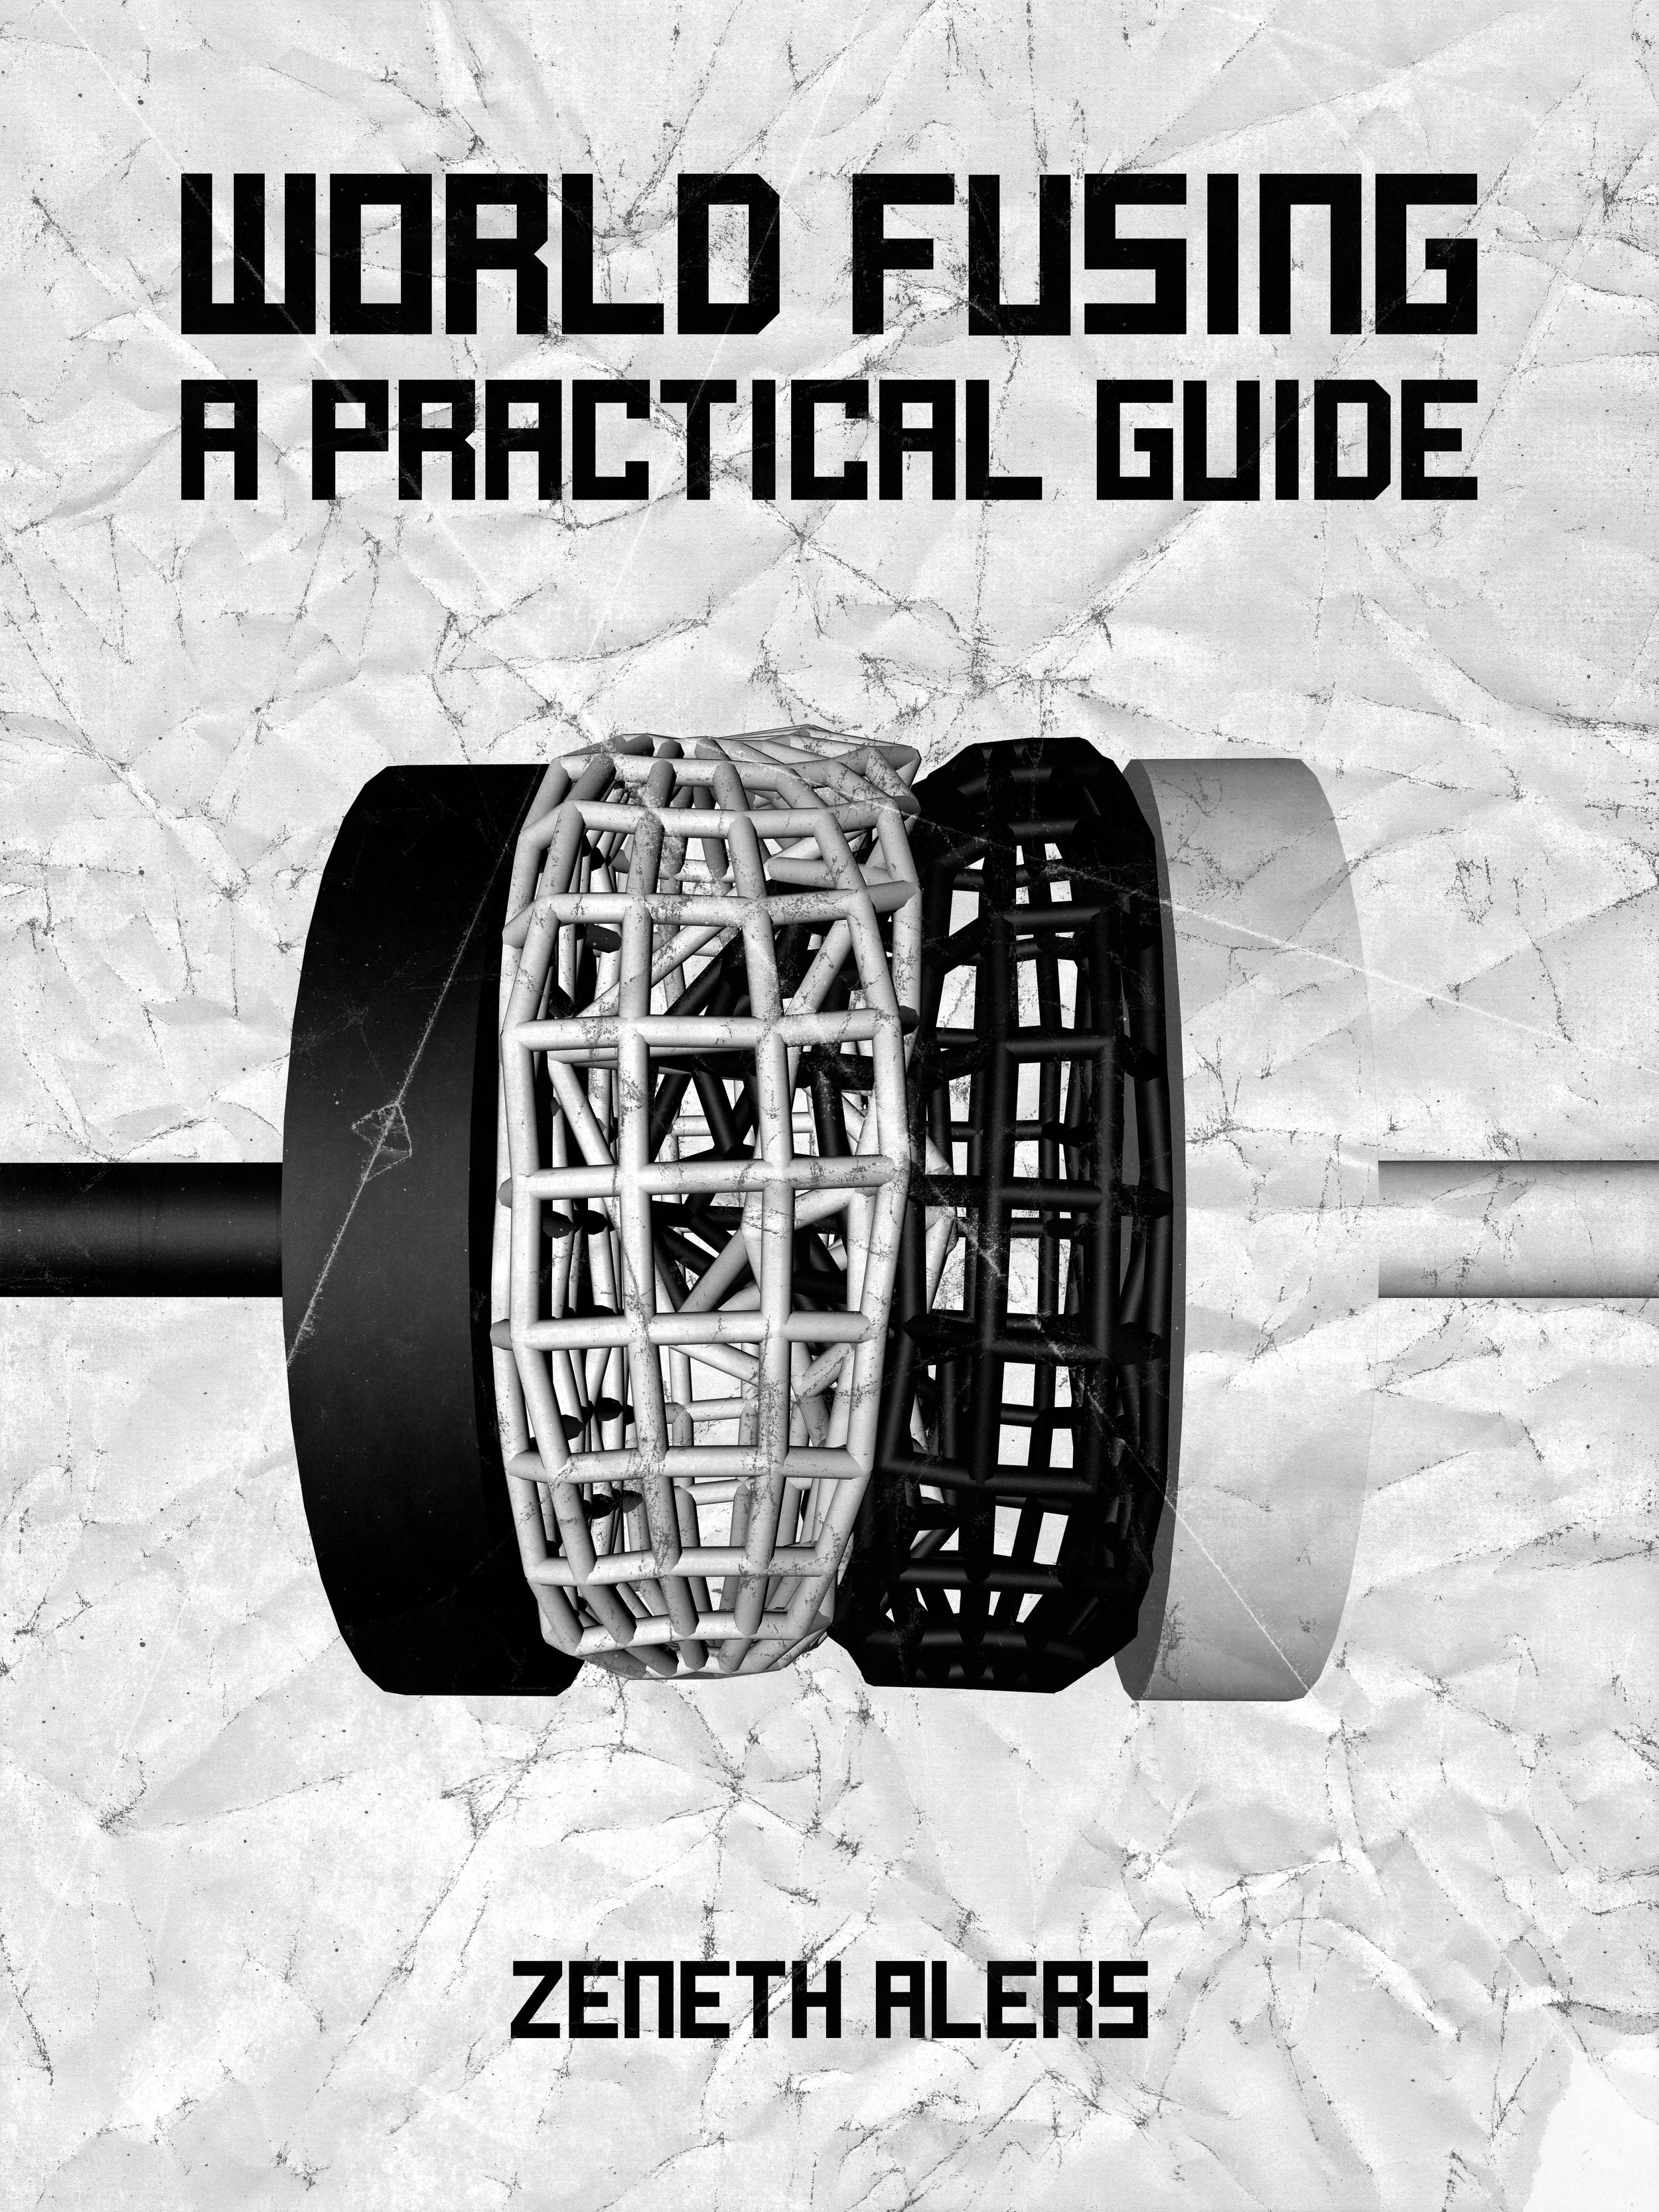 General Guide - World Fusing, a Practical Guide.jpg